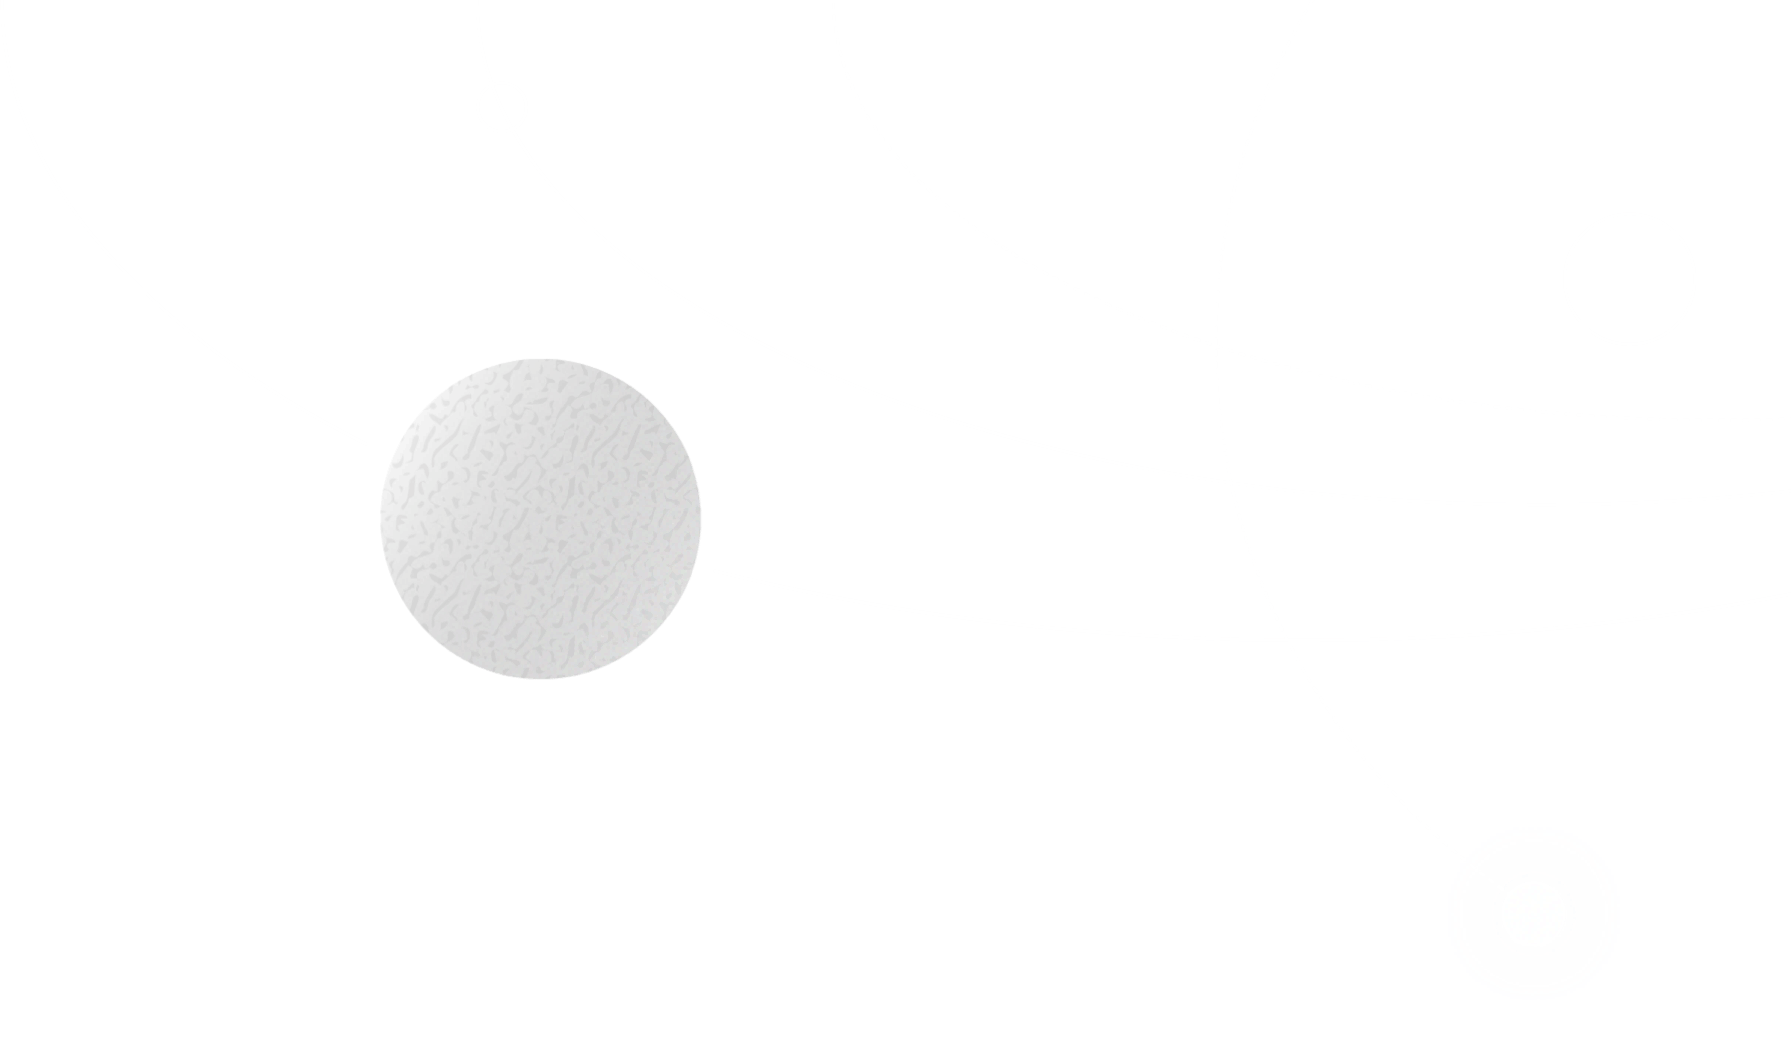 Planets with drawn orbits